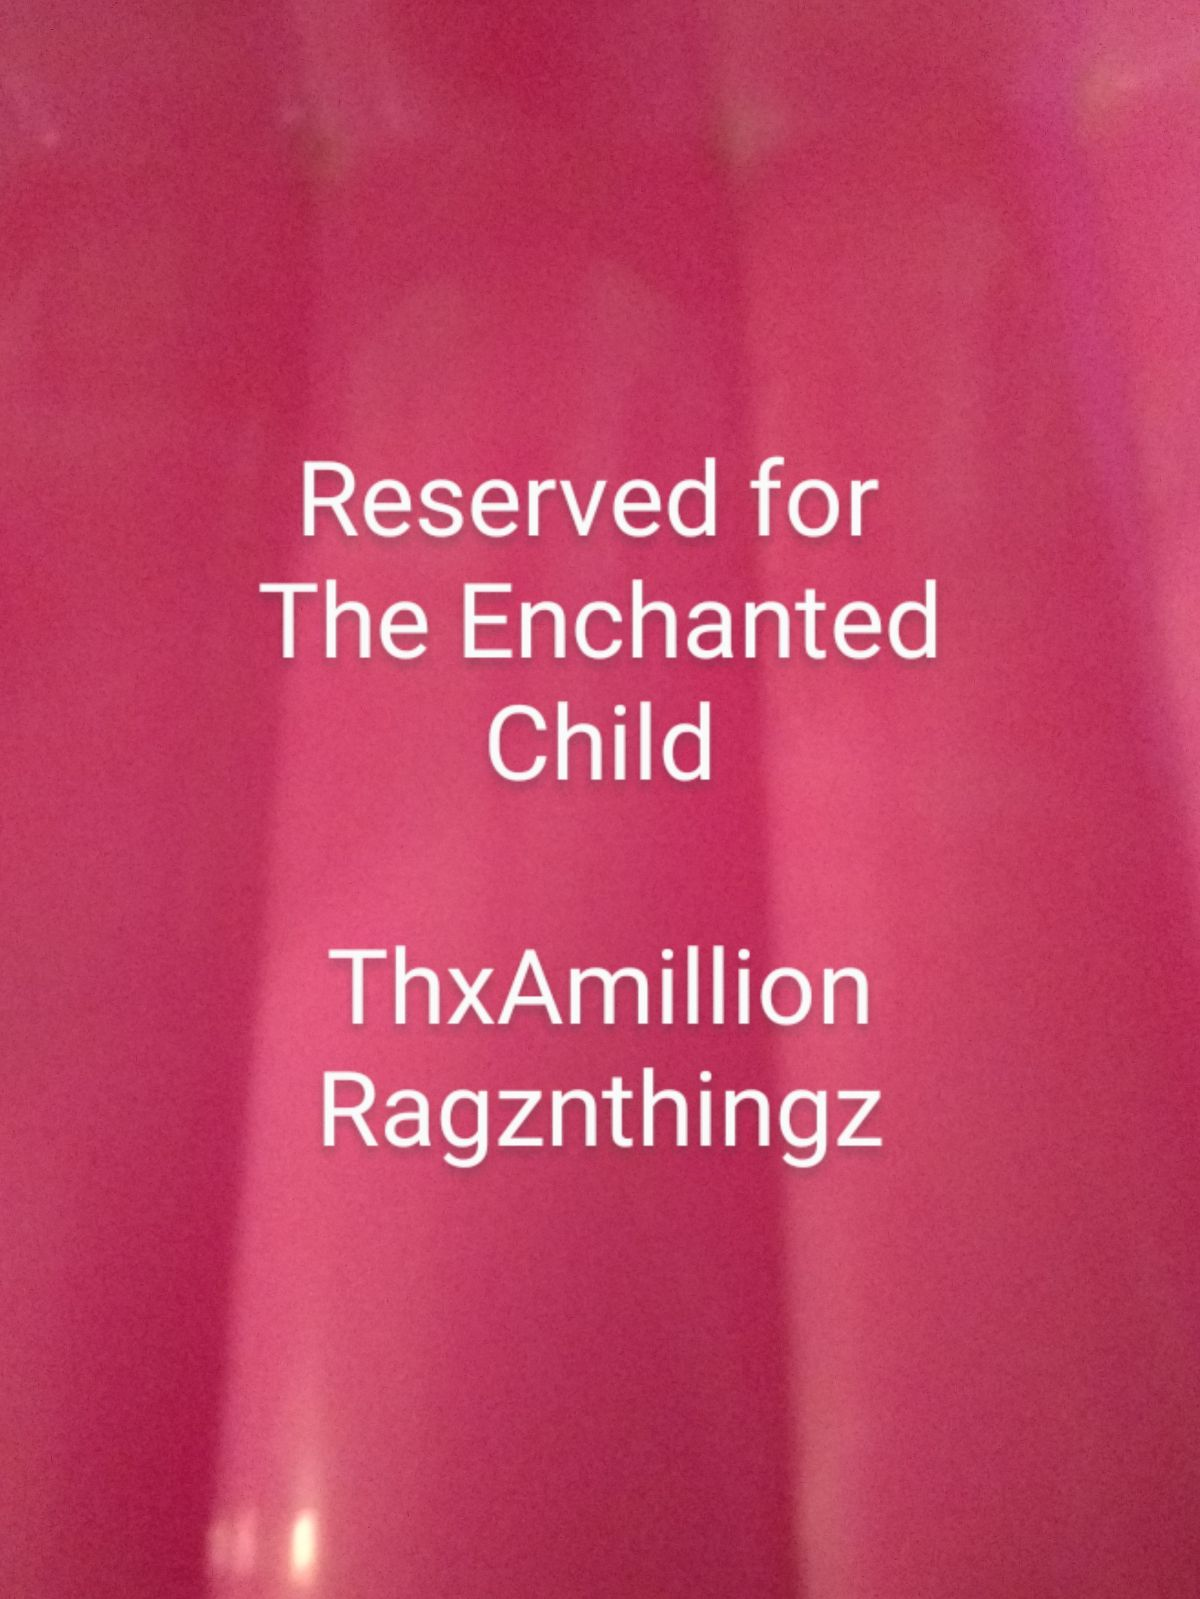 Reserved for The Enchanted Child